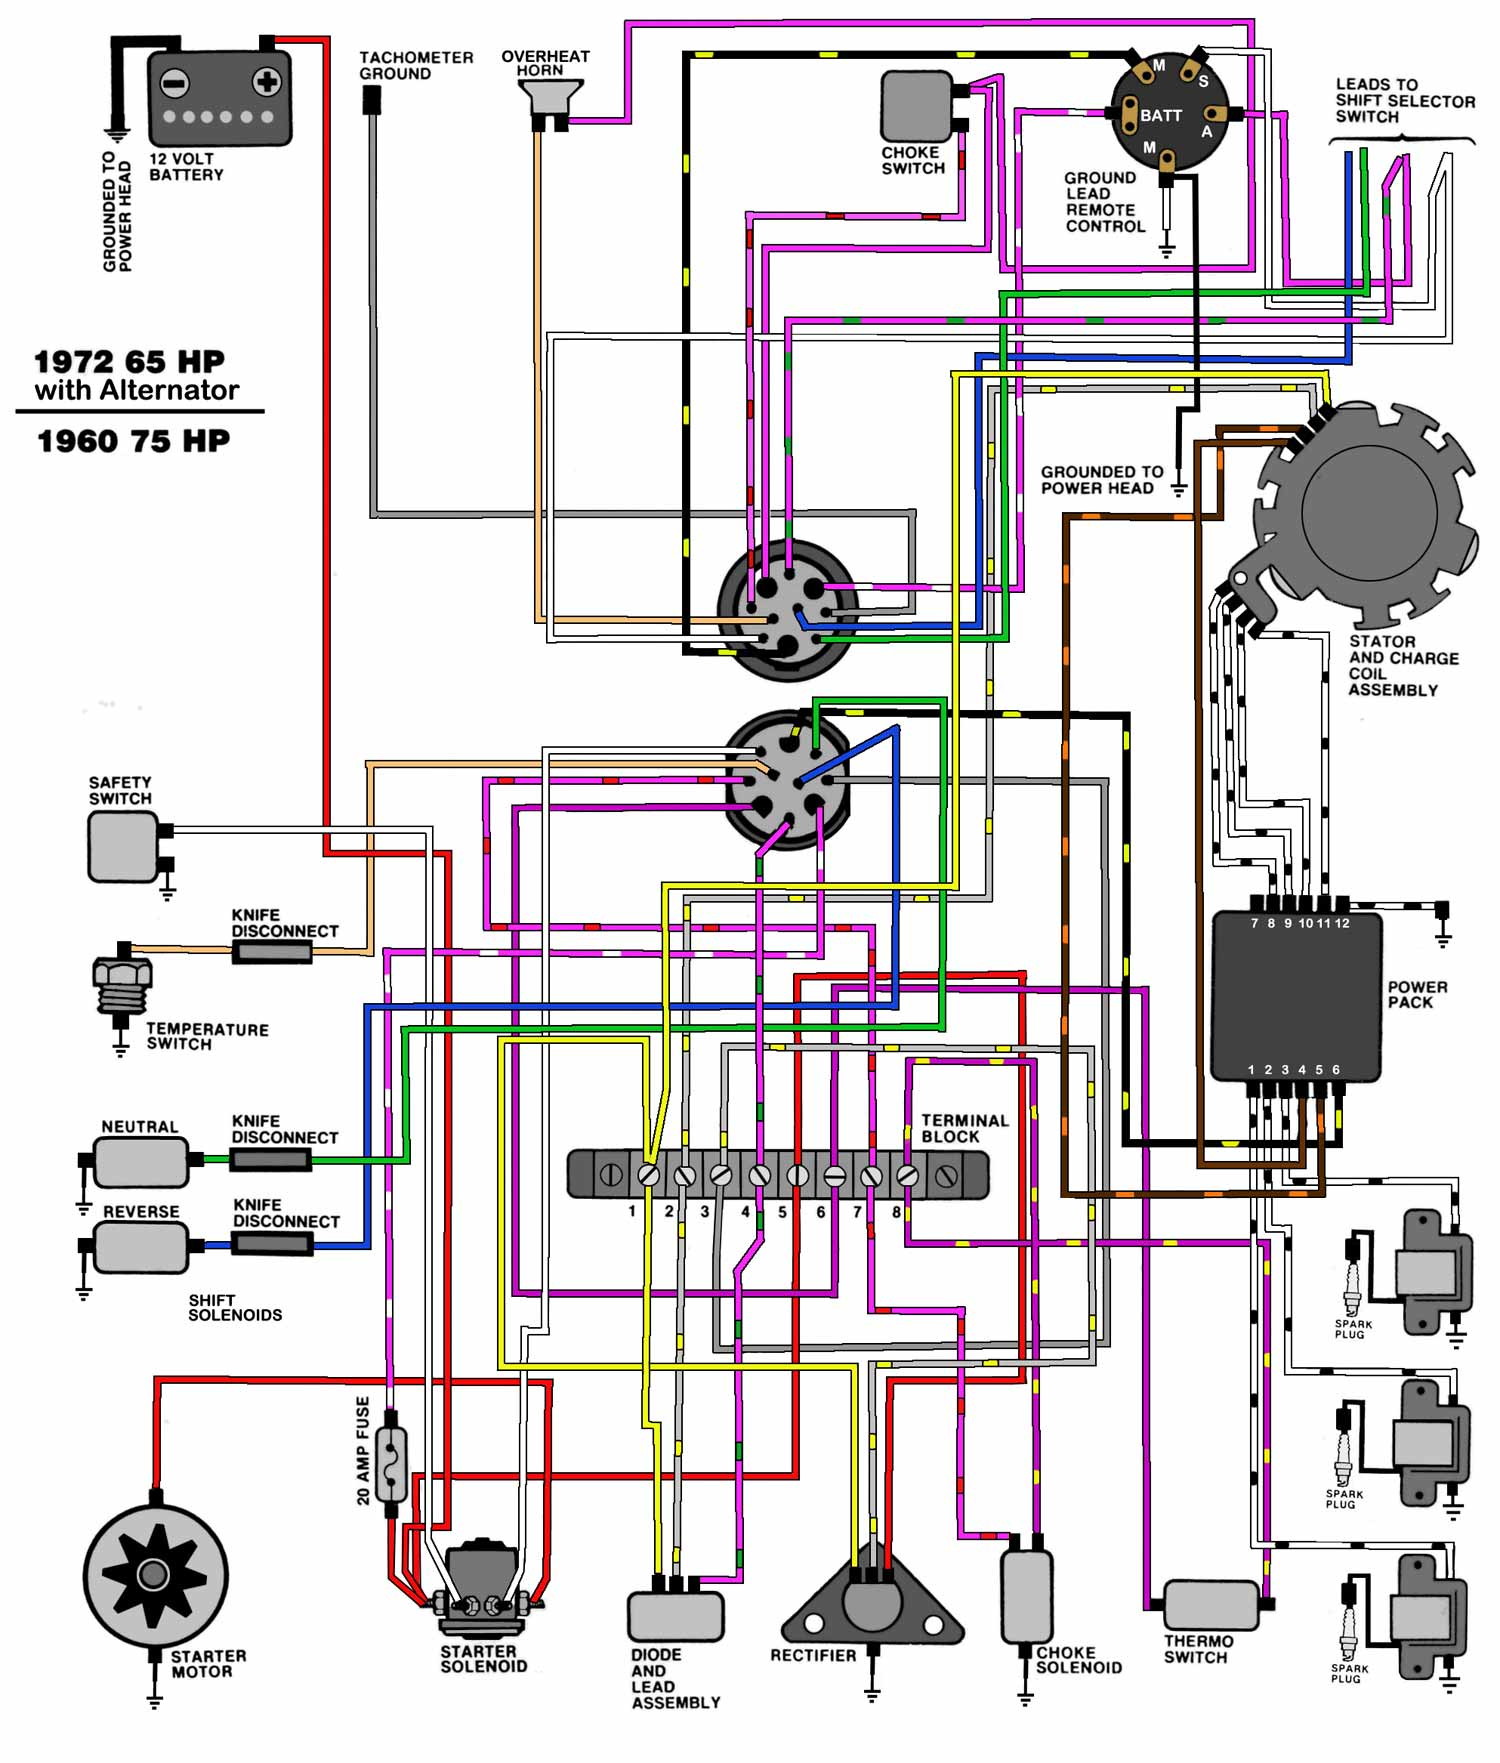 Omc Schematic Diagrams Wiring Diagram Detailed Boat Basic Outboard 2002 Online